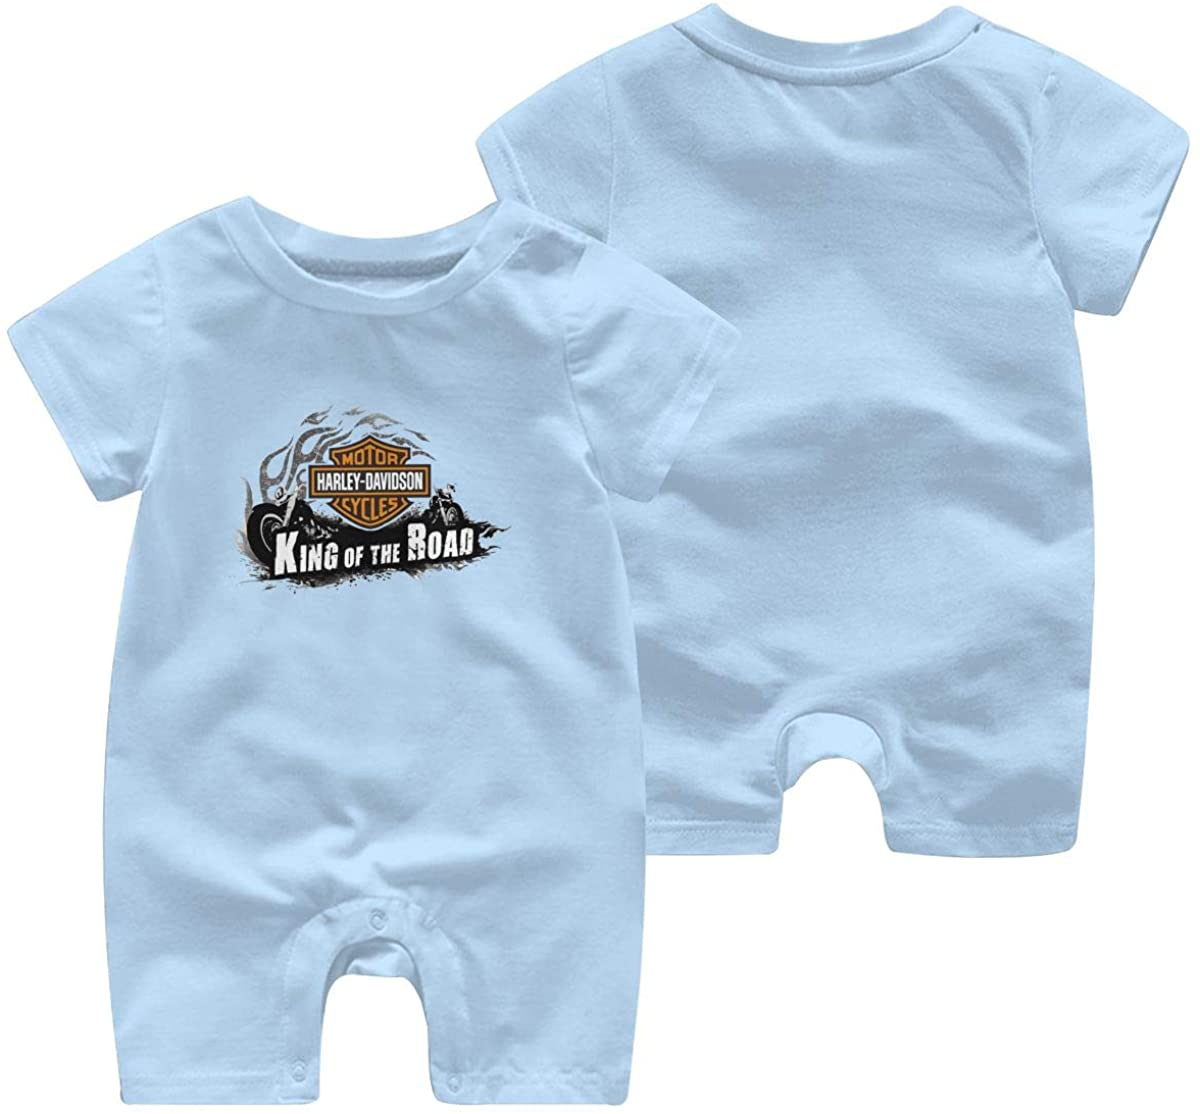 Harley Davidson One Piece Outfits Baby Solid Color Rompers with Button Kids Short Sleeve Playsuit Jumpsuits Cotton Clothing 0-3 Months Sky Blue